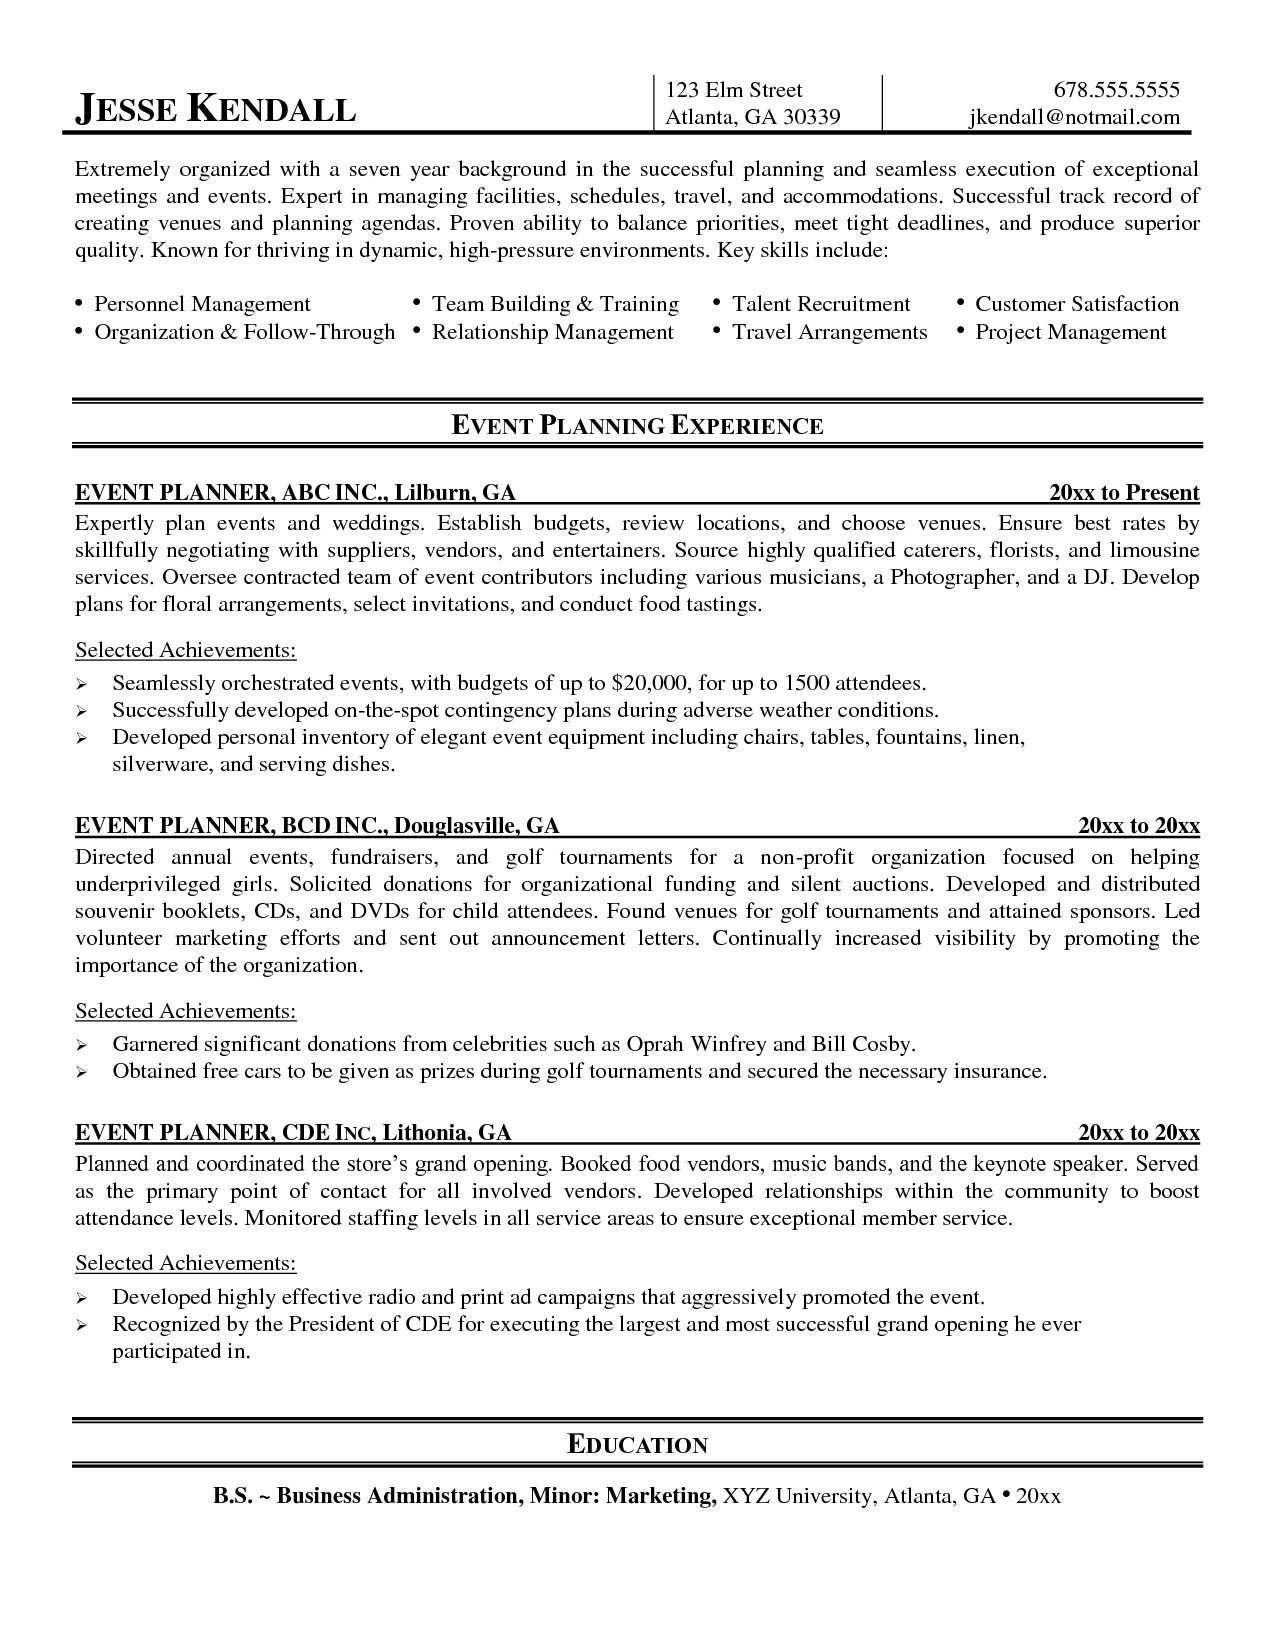 Event Planner Resume Event Planner Resume Now Planning Examples Party Planners Process Manager Cover Letter Writing Template Corporate Events Vancouver Organization Wedding Job Description Coordinato event planner resume|wikiresume.com